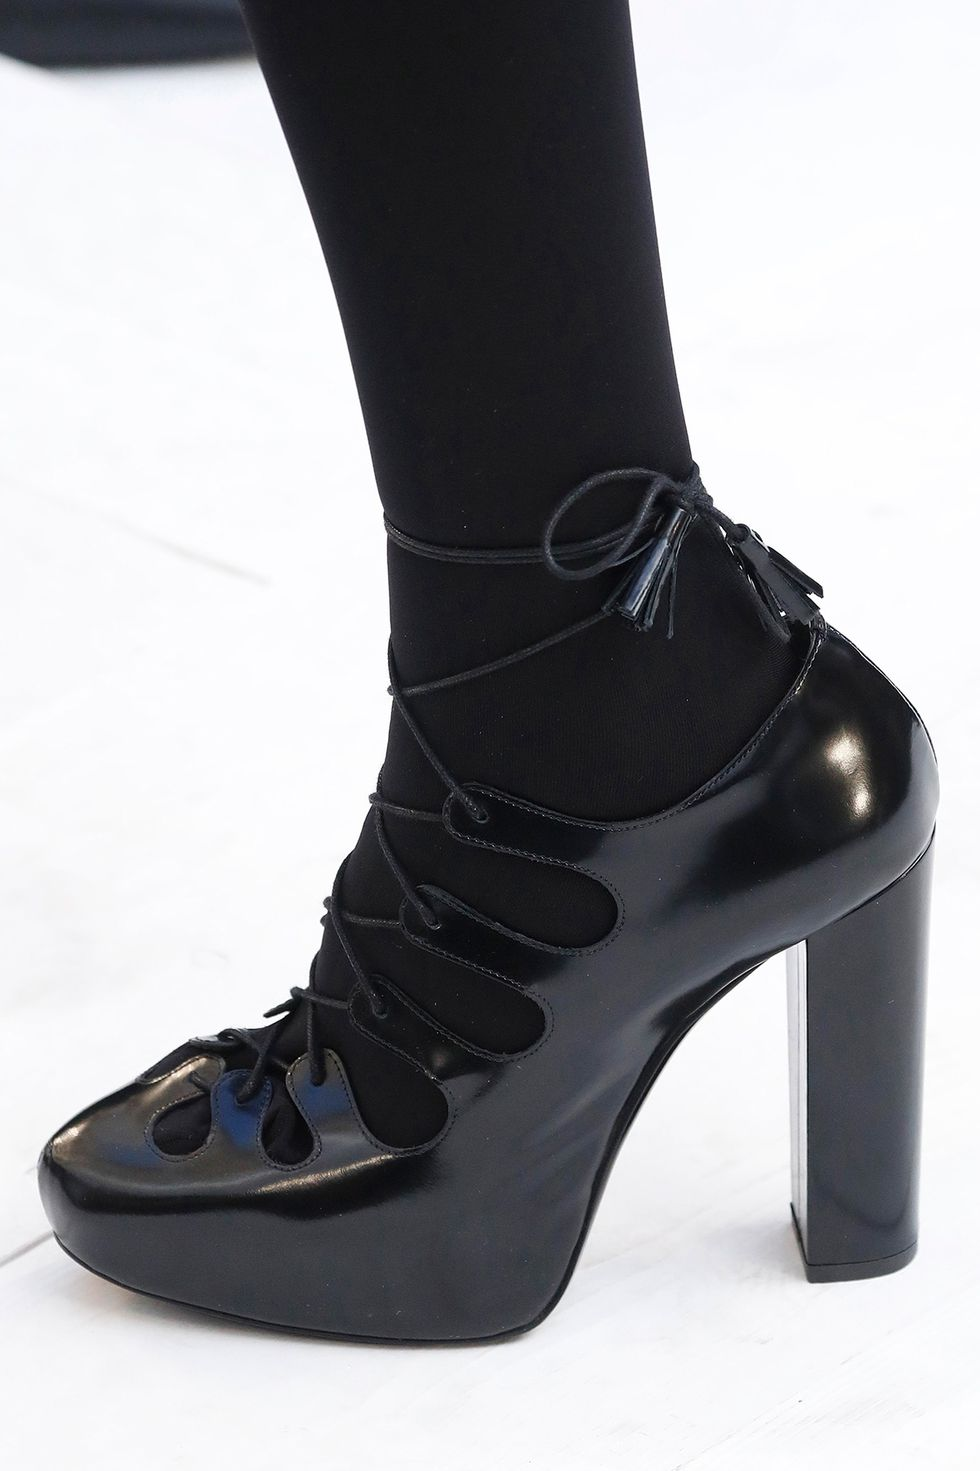 max-mara-fall-2020-runway-lace-up-heel-1582216530.jpg (980×1471)